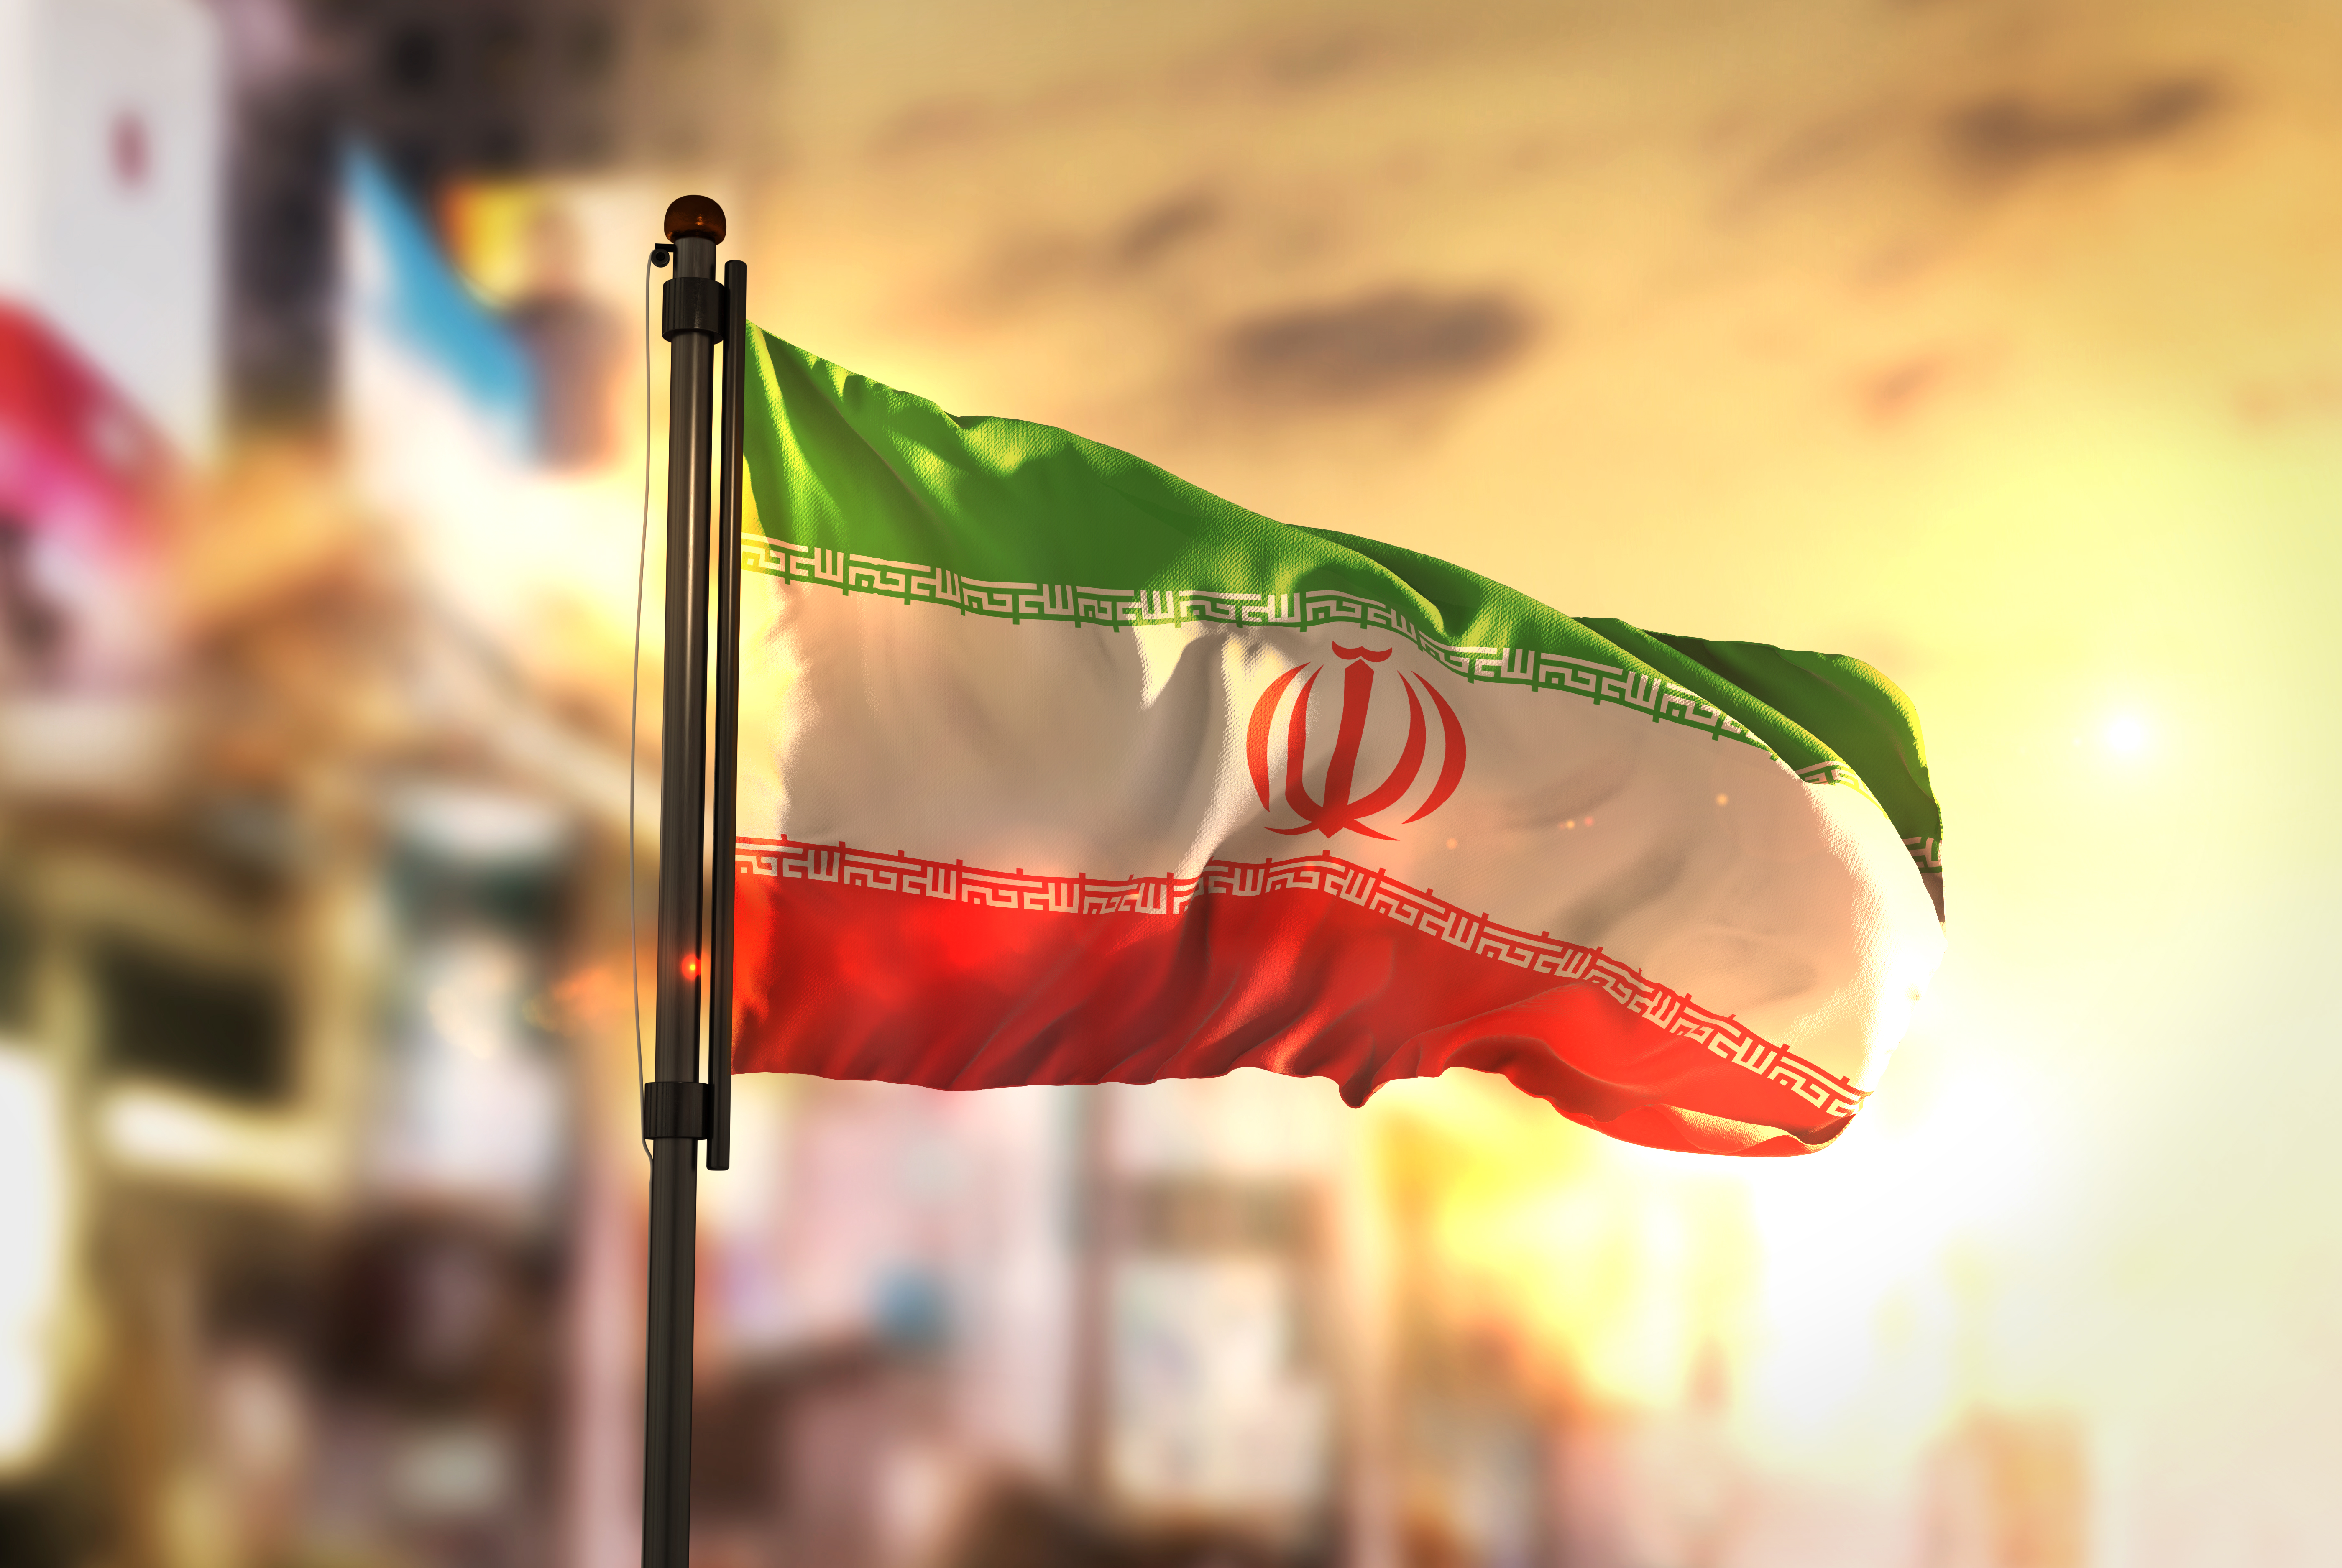 COVID-19 and Christianity surge in Iran